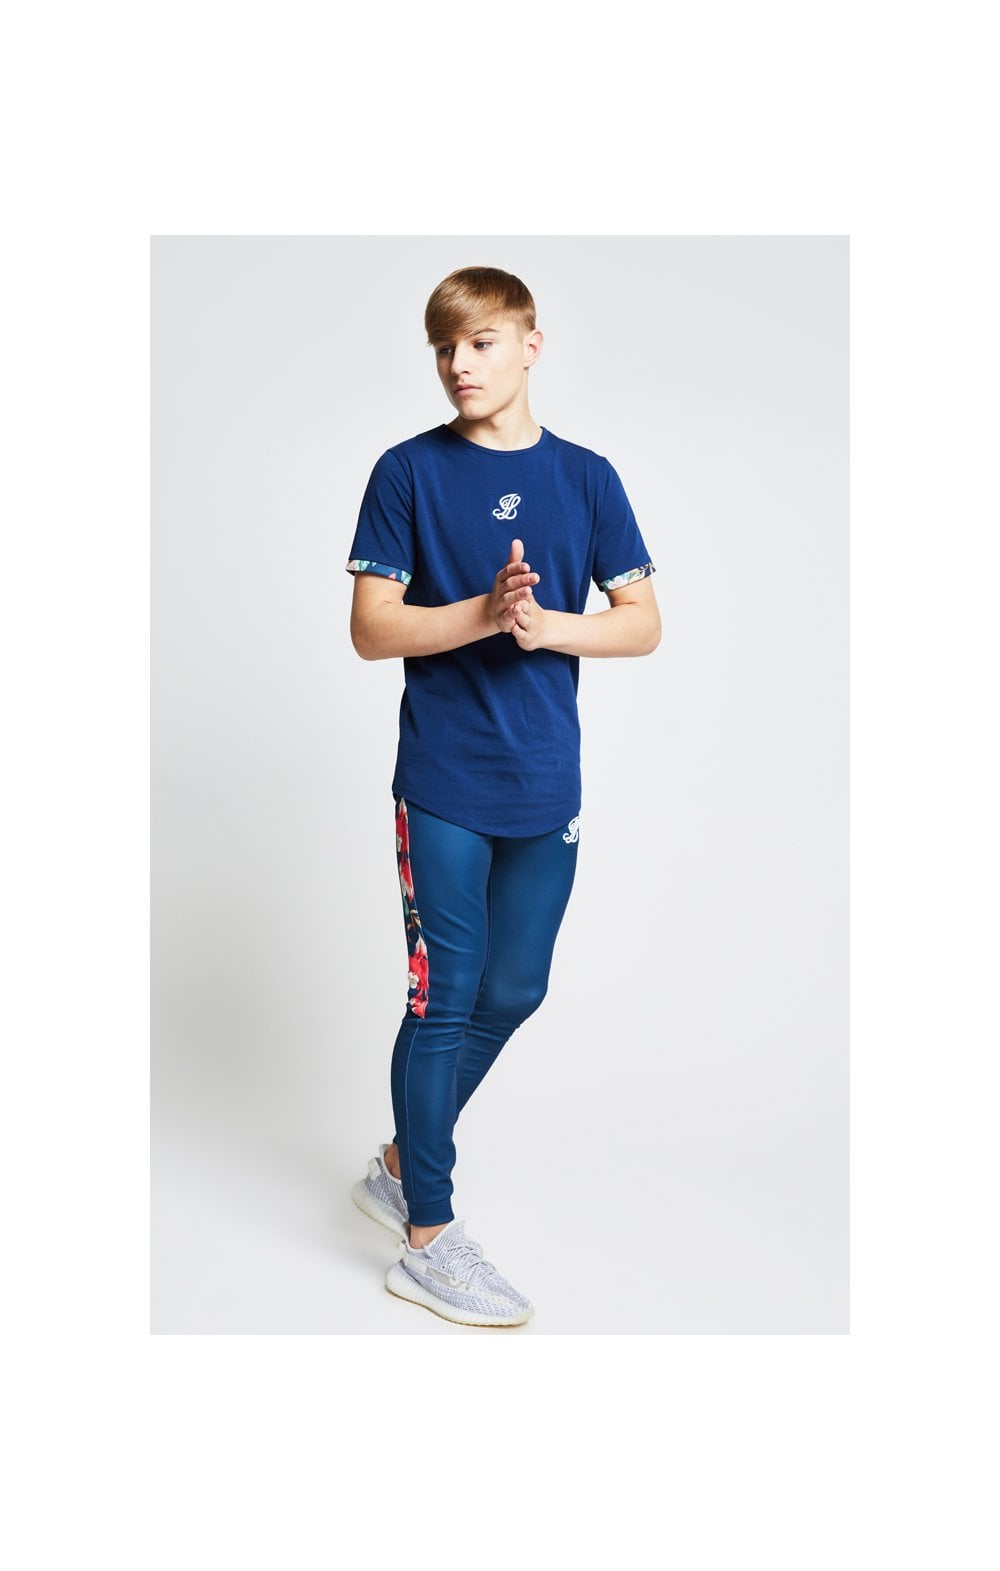 Illusive London Contrast Cuff Tee – Teal & Tropical Leaf (3)